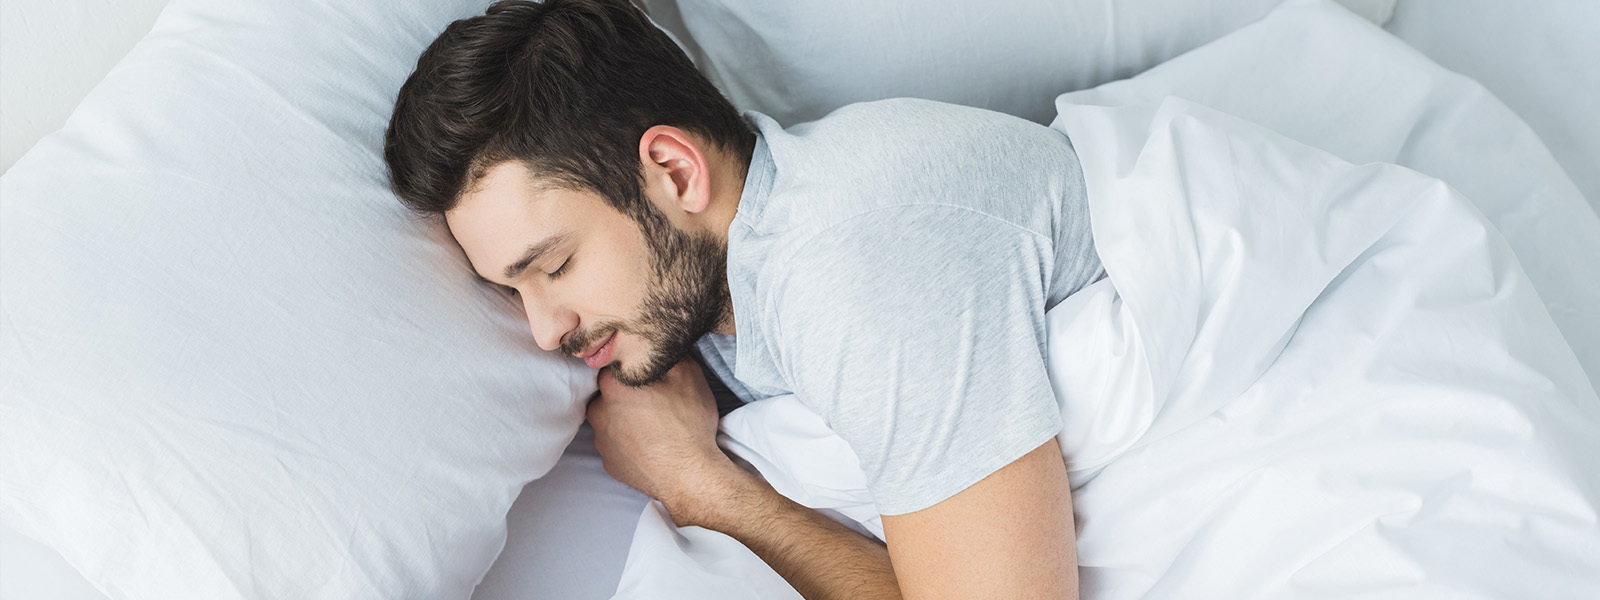 Image of a man sleeping in bed, getting a good night sleep.